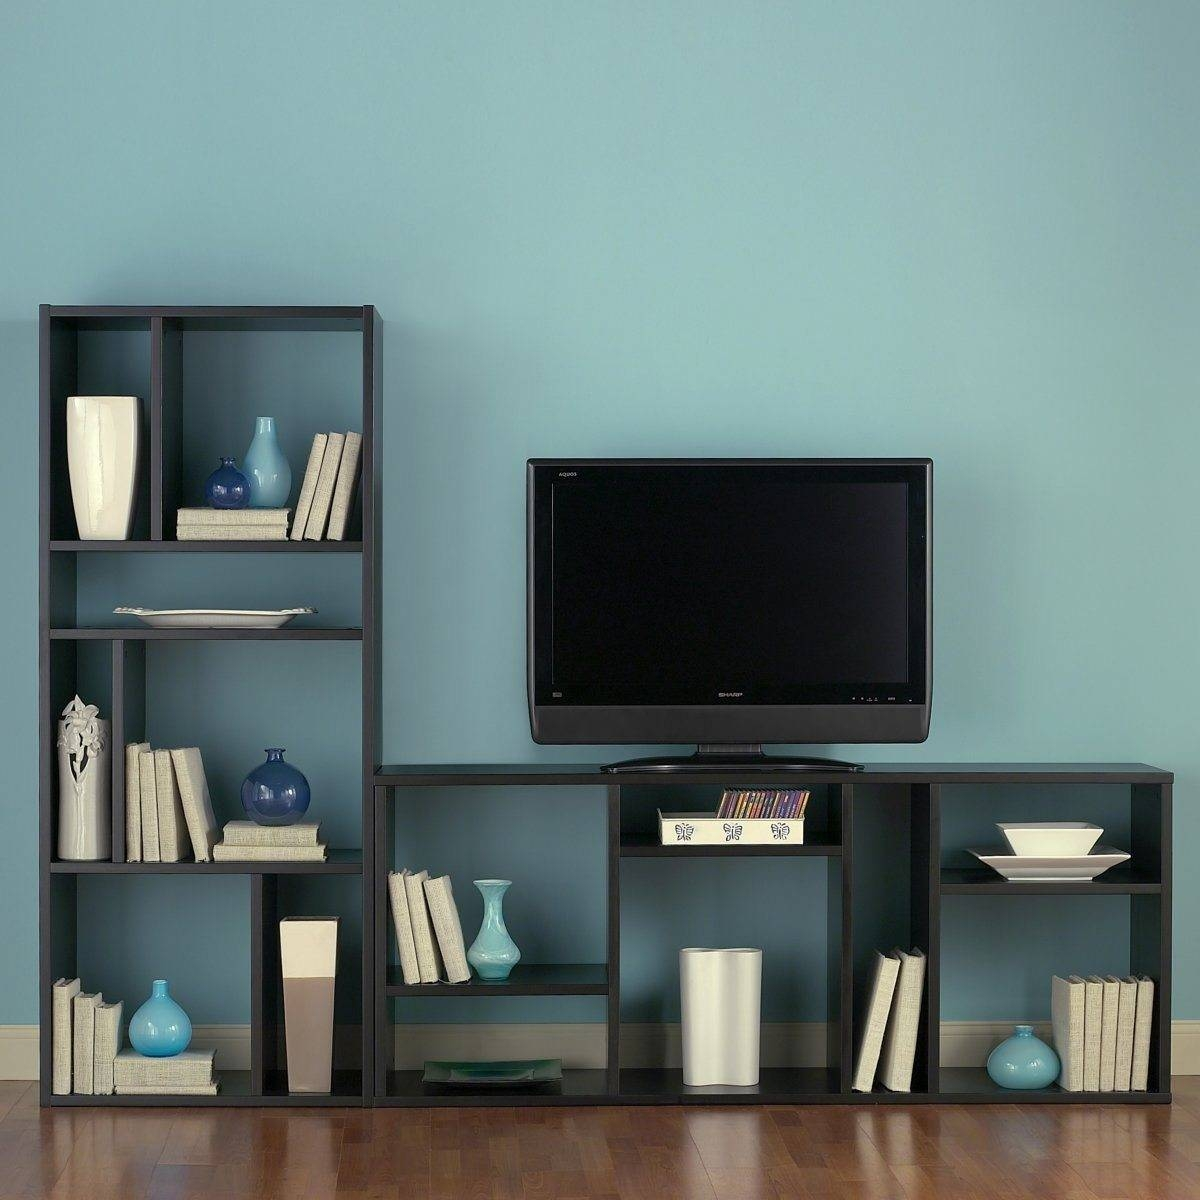 Furniture Home: Amazing Tv Stands With Bookshelves Lcd Tv Stand inside Tv Stands With Matching Bookcases (Image 5 of 15)